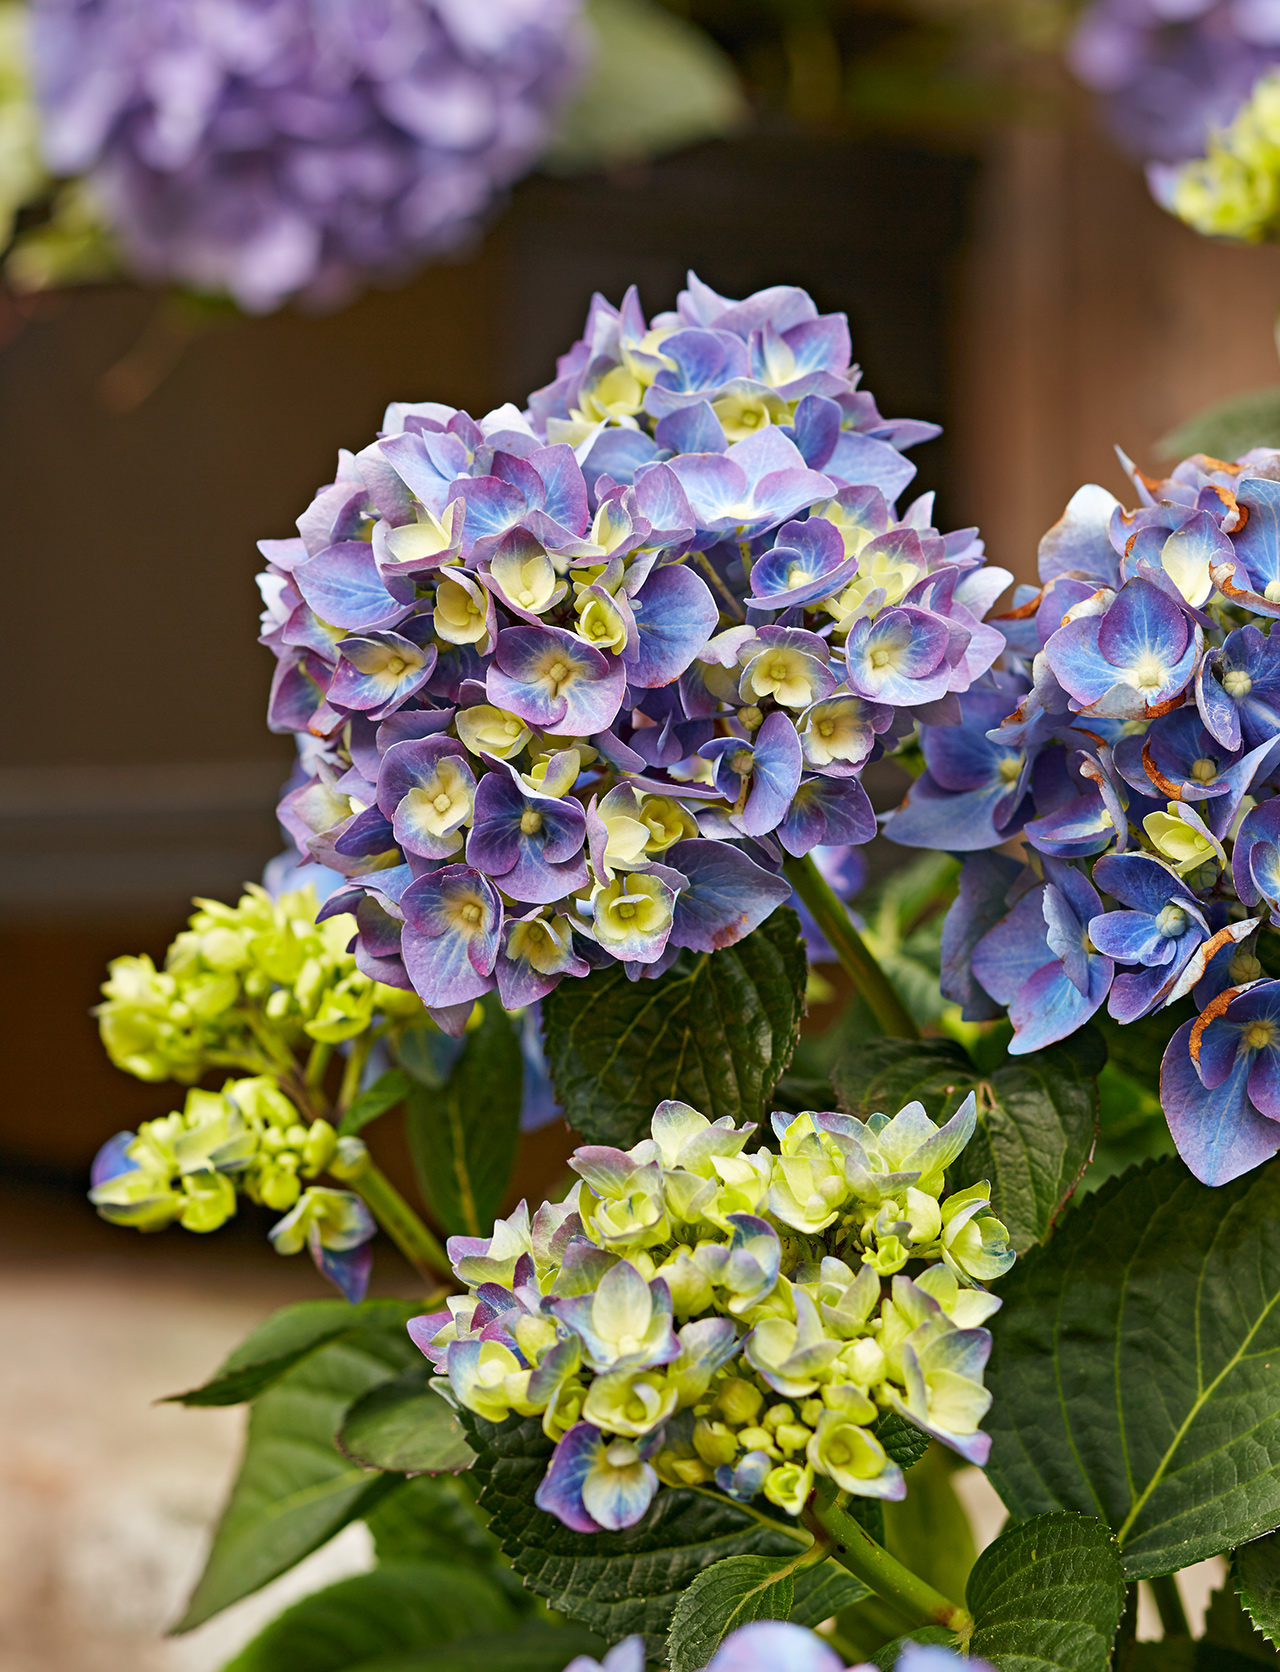 6 Interesting Facts You Didn't Know About Hydrangeas